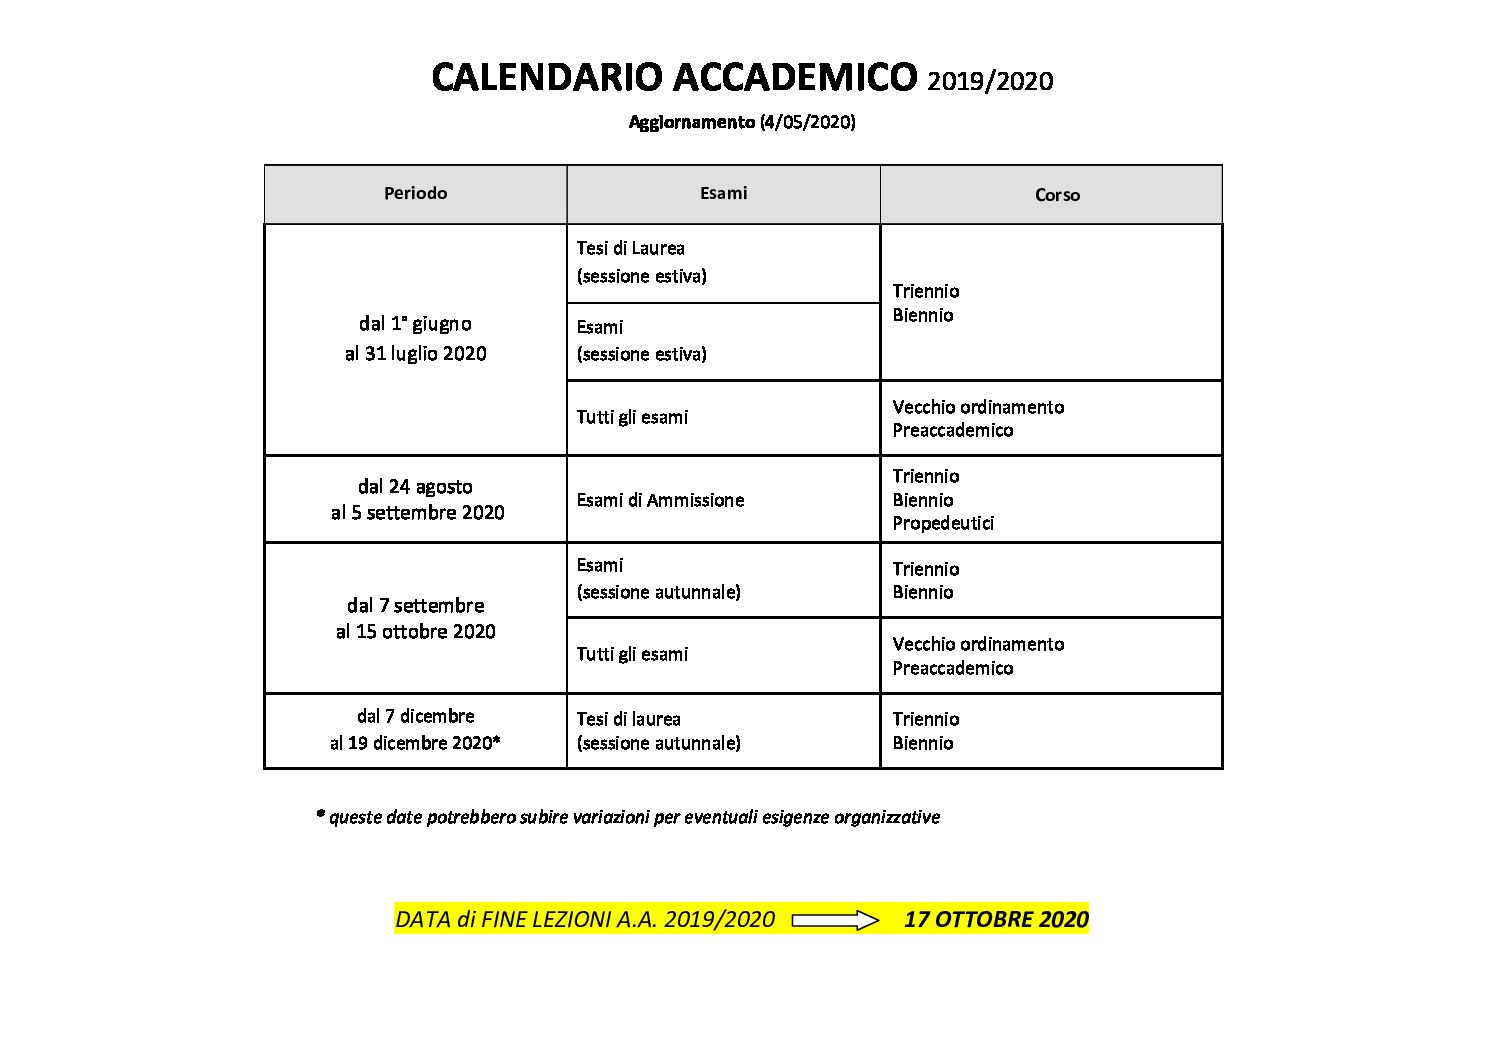 Allegato B (CalendarioAcc.2019-20 modificato)-1-1